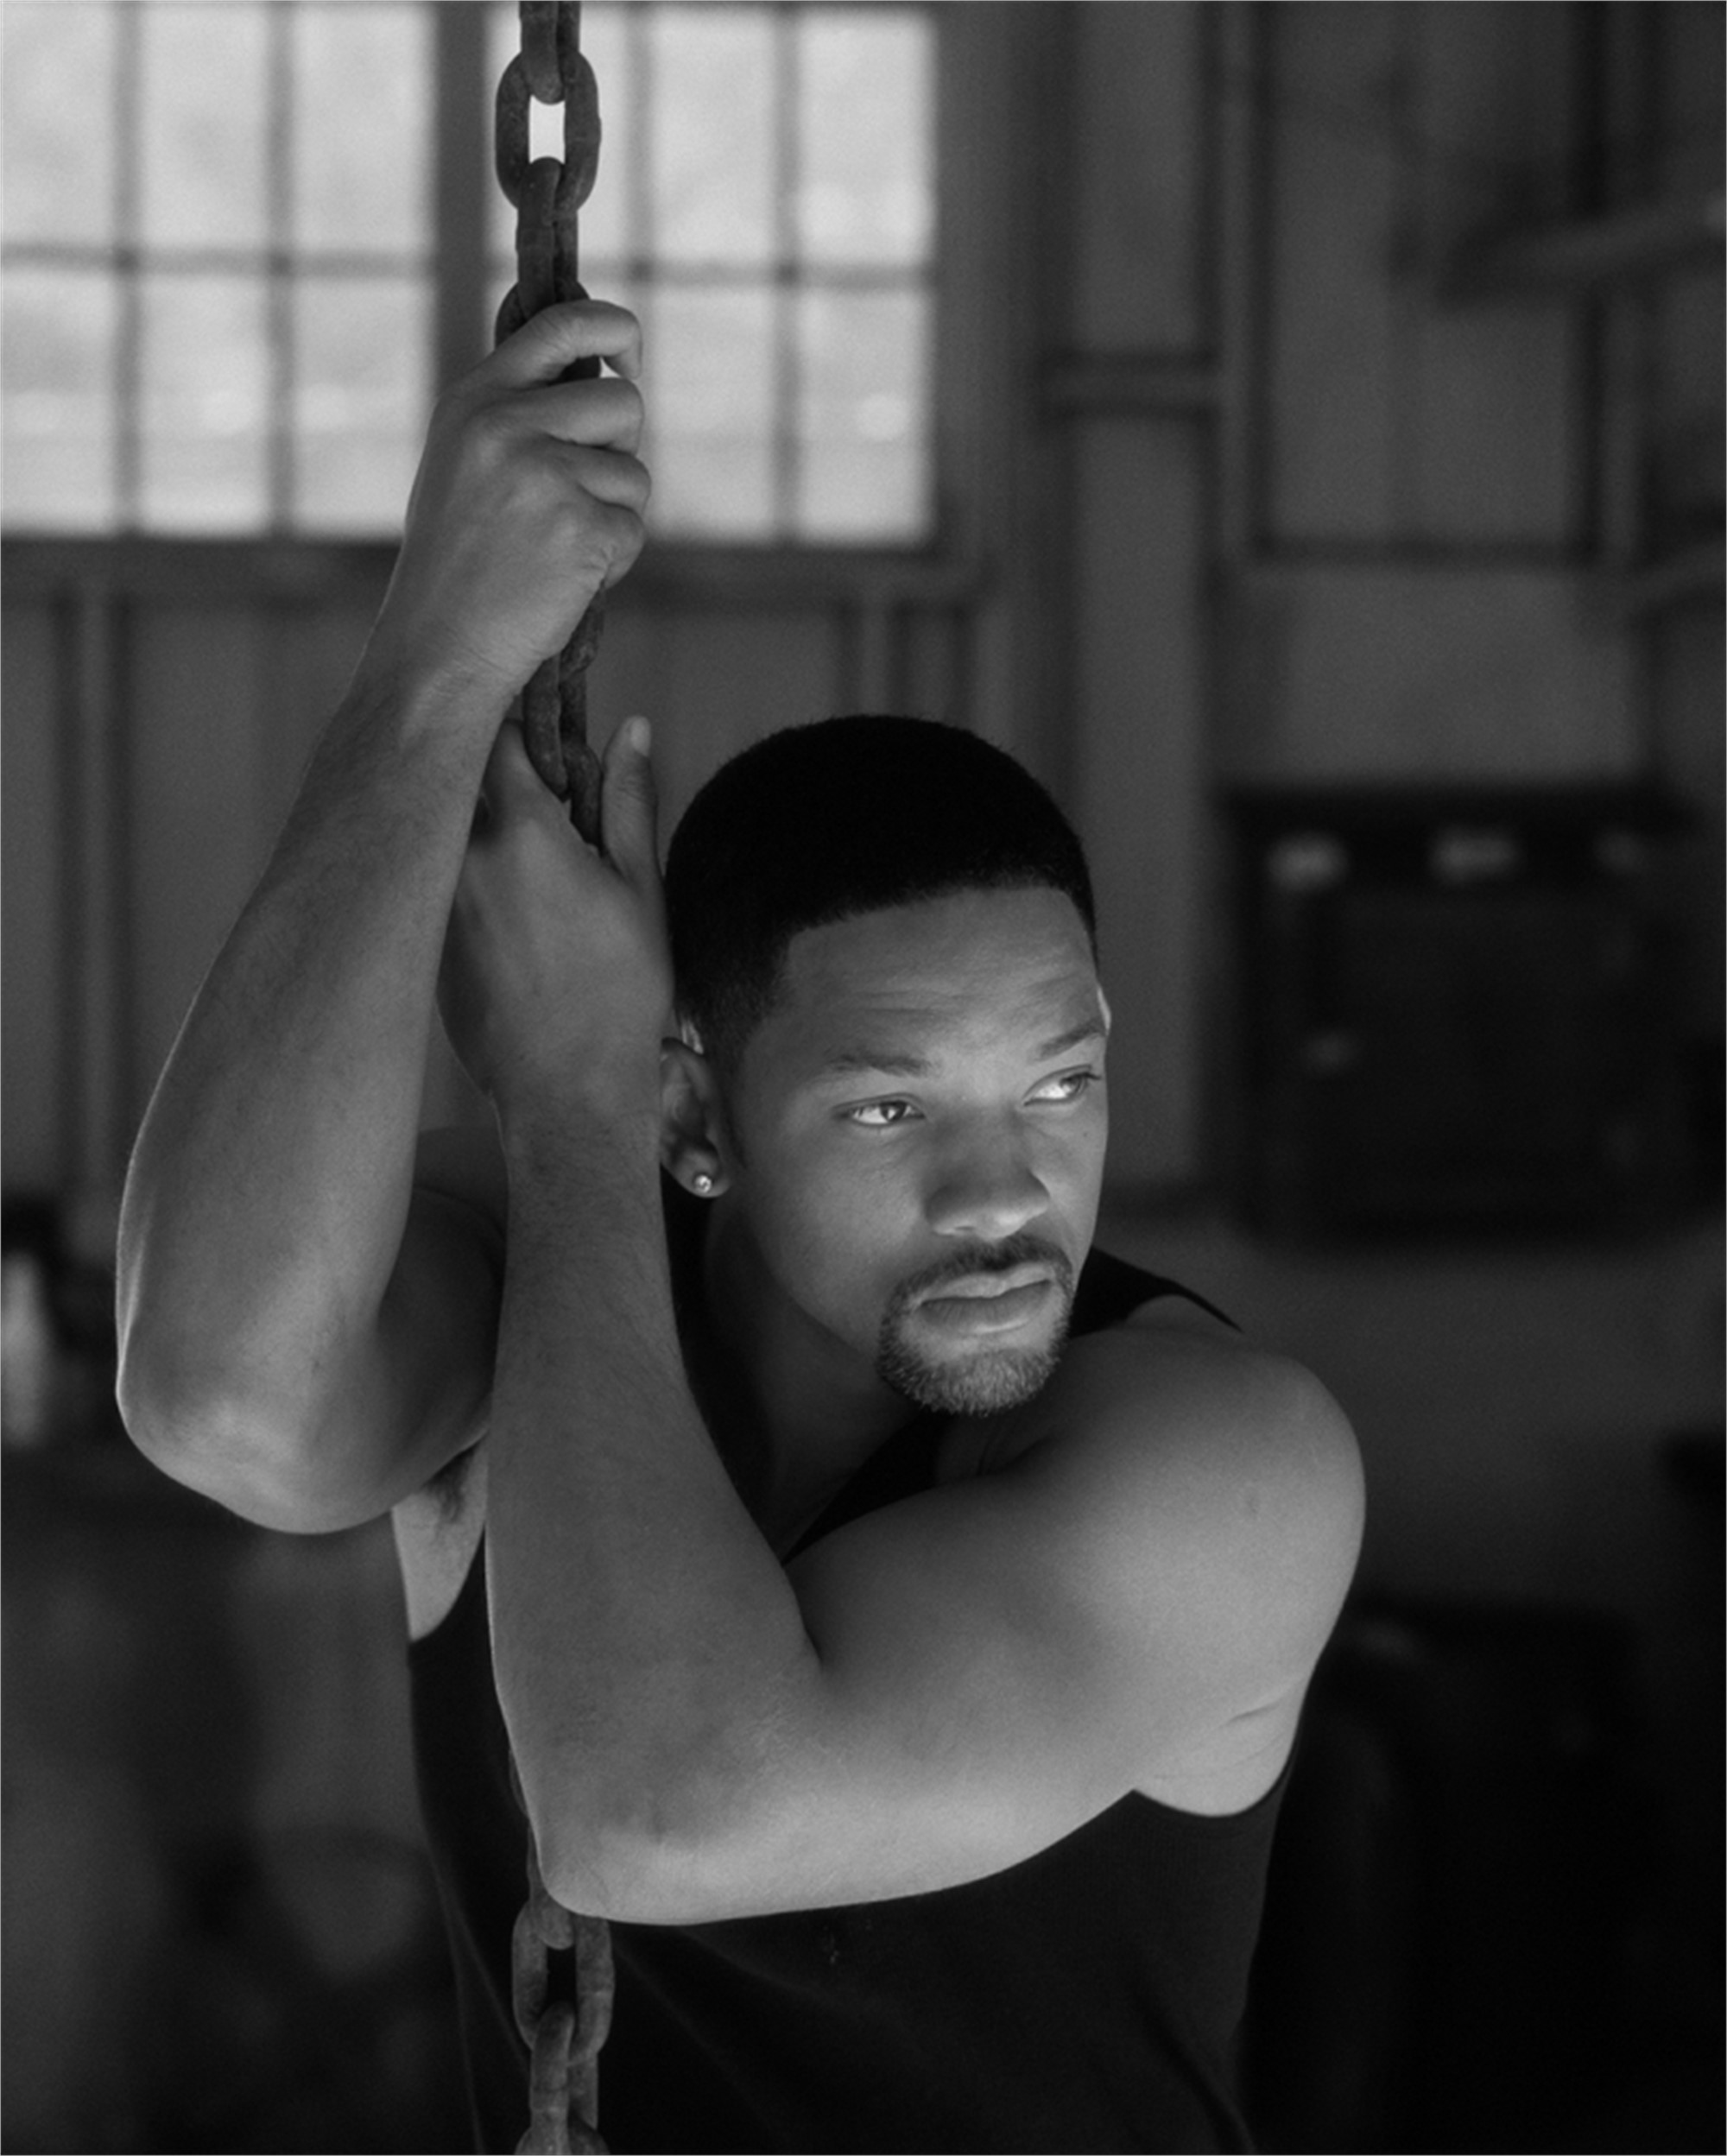 03011 Will Smith Hanging From Chain BW by Timothy White